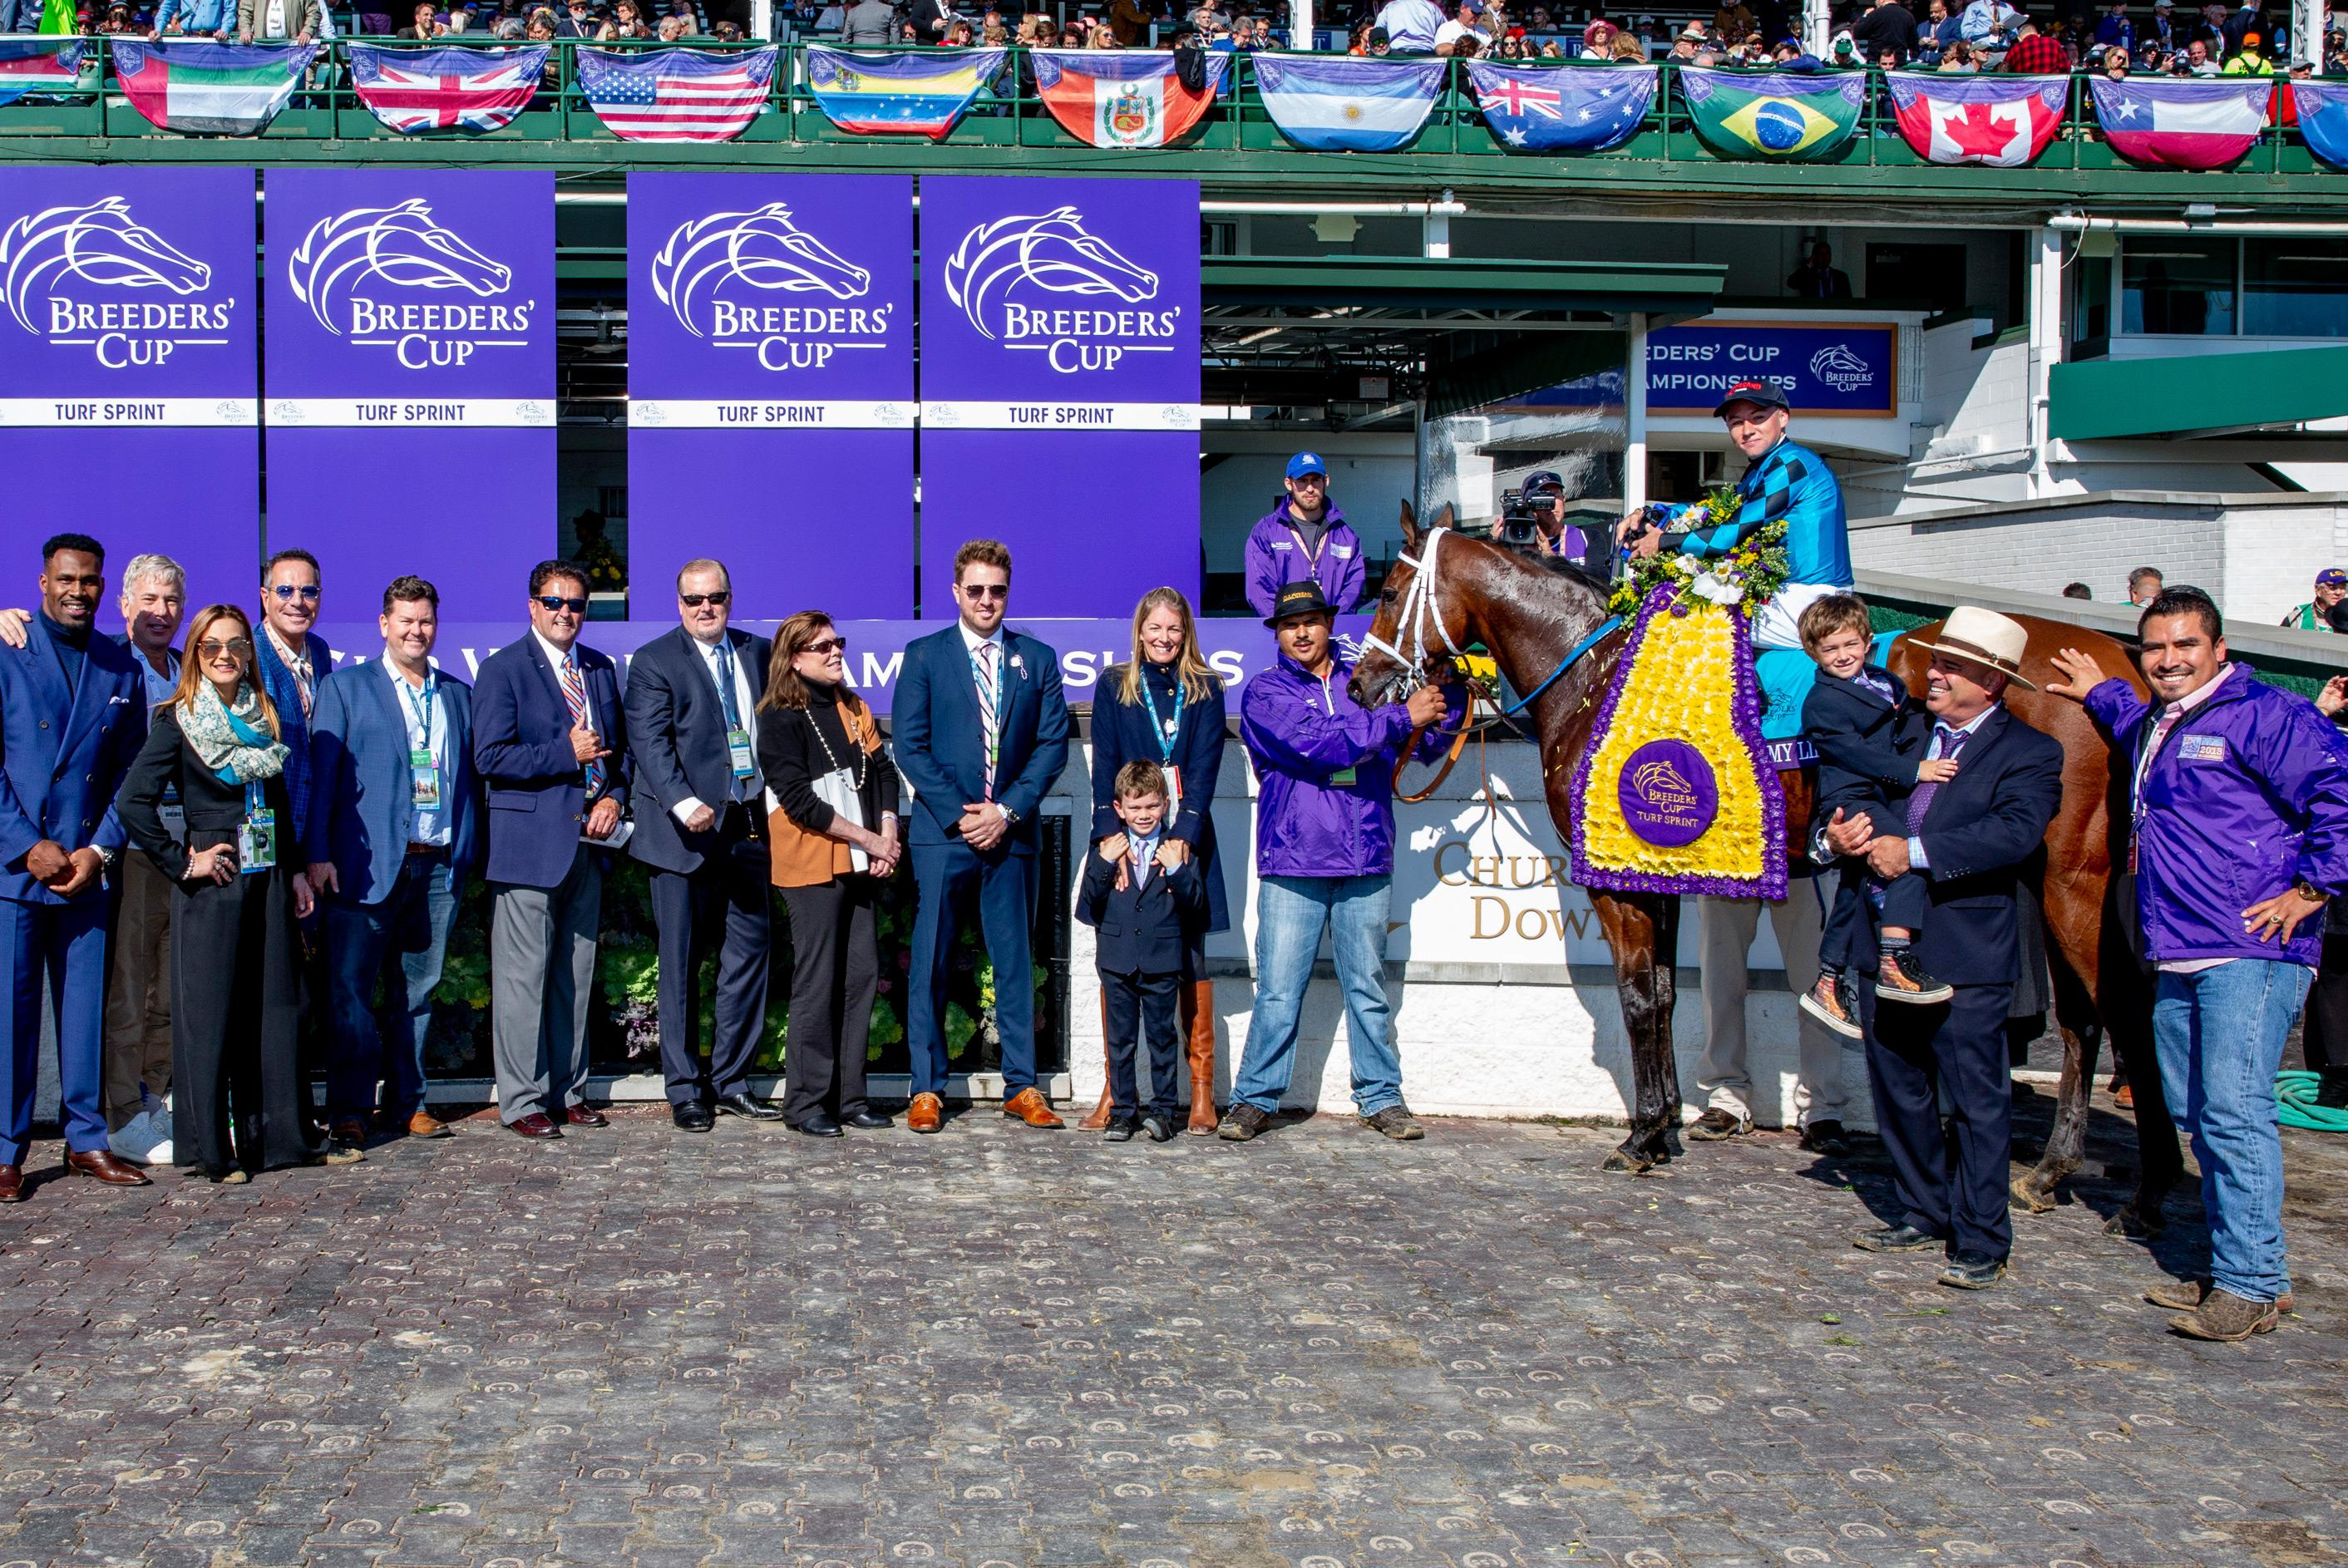 Stormy Liberal, Trump, and others in the 2018 Turf Sprint winner's circle.